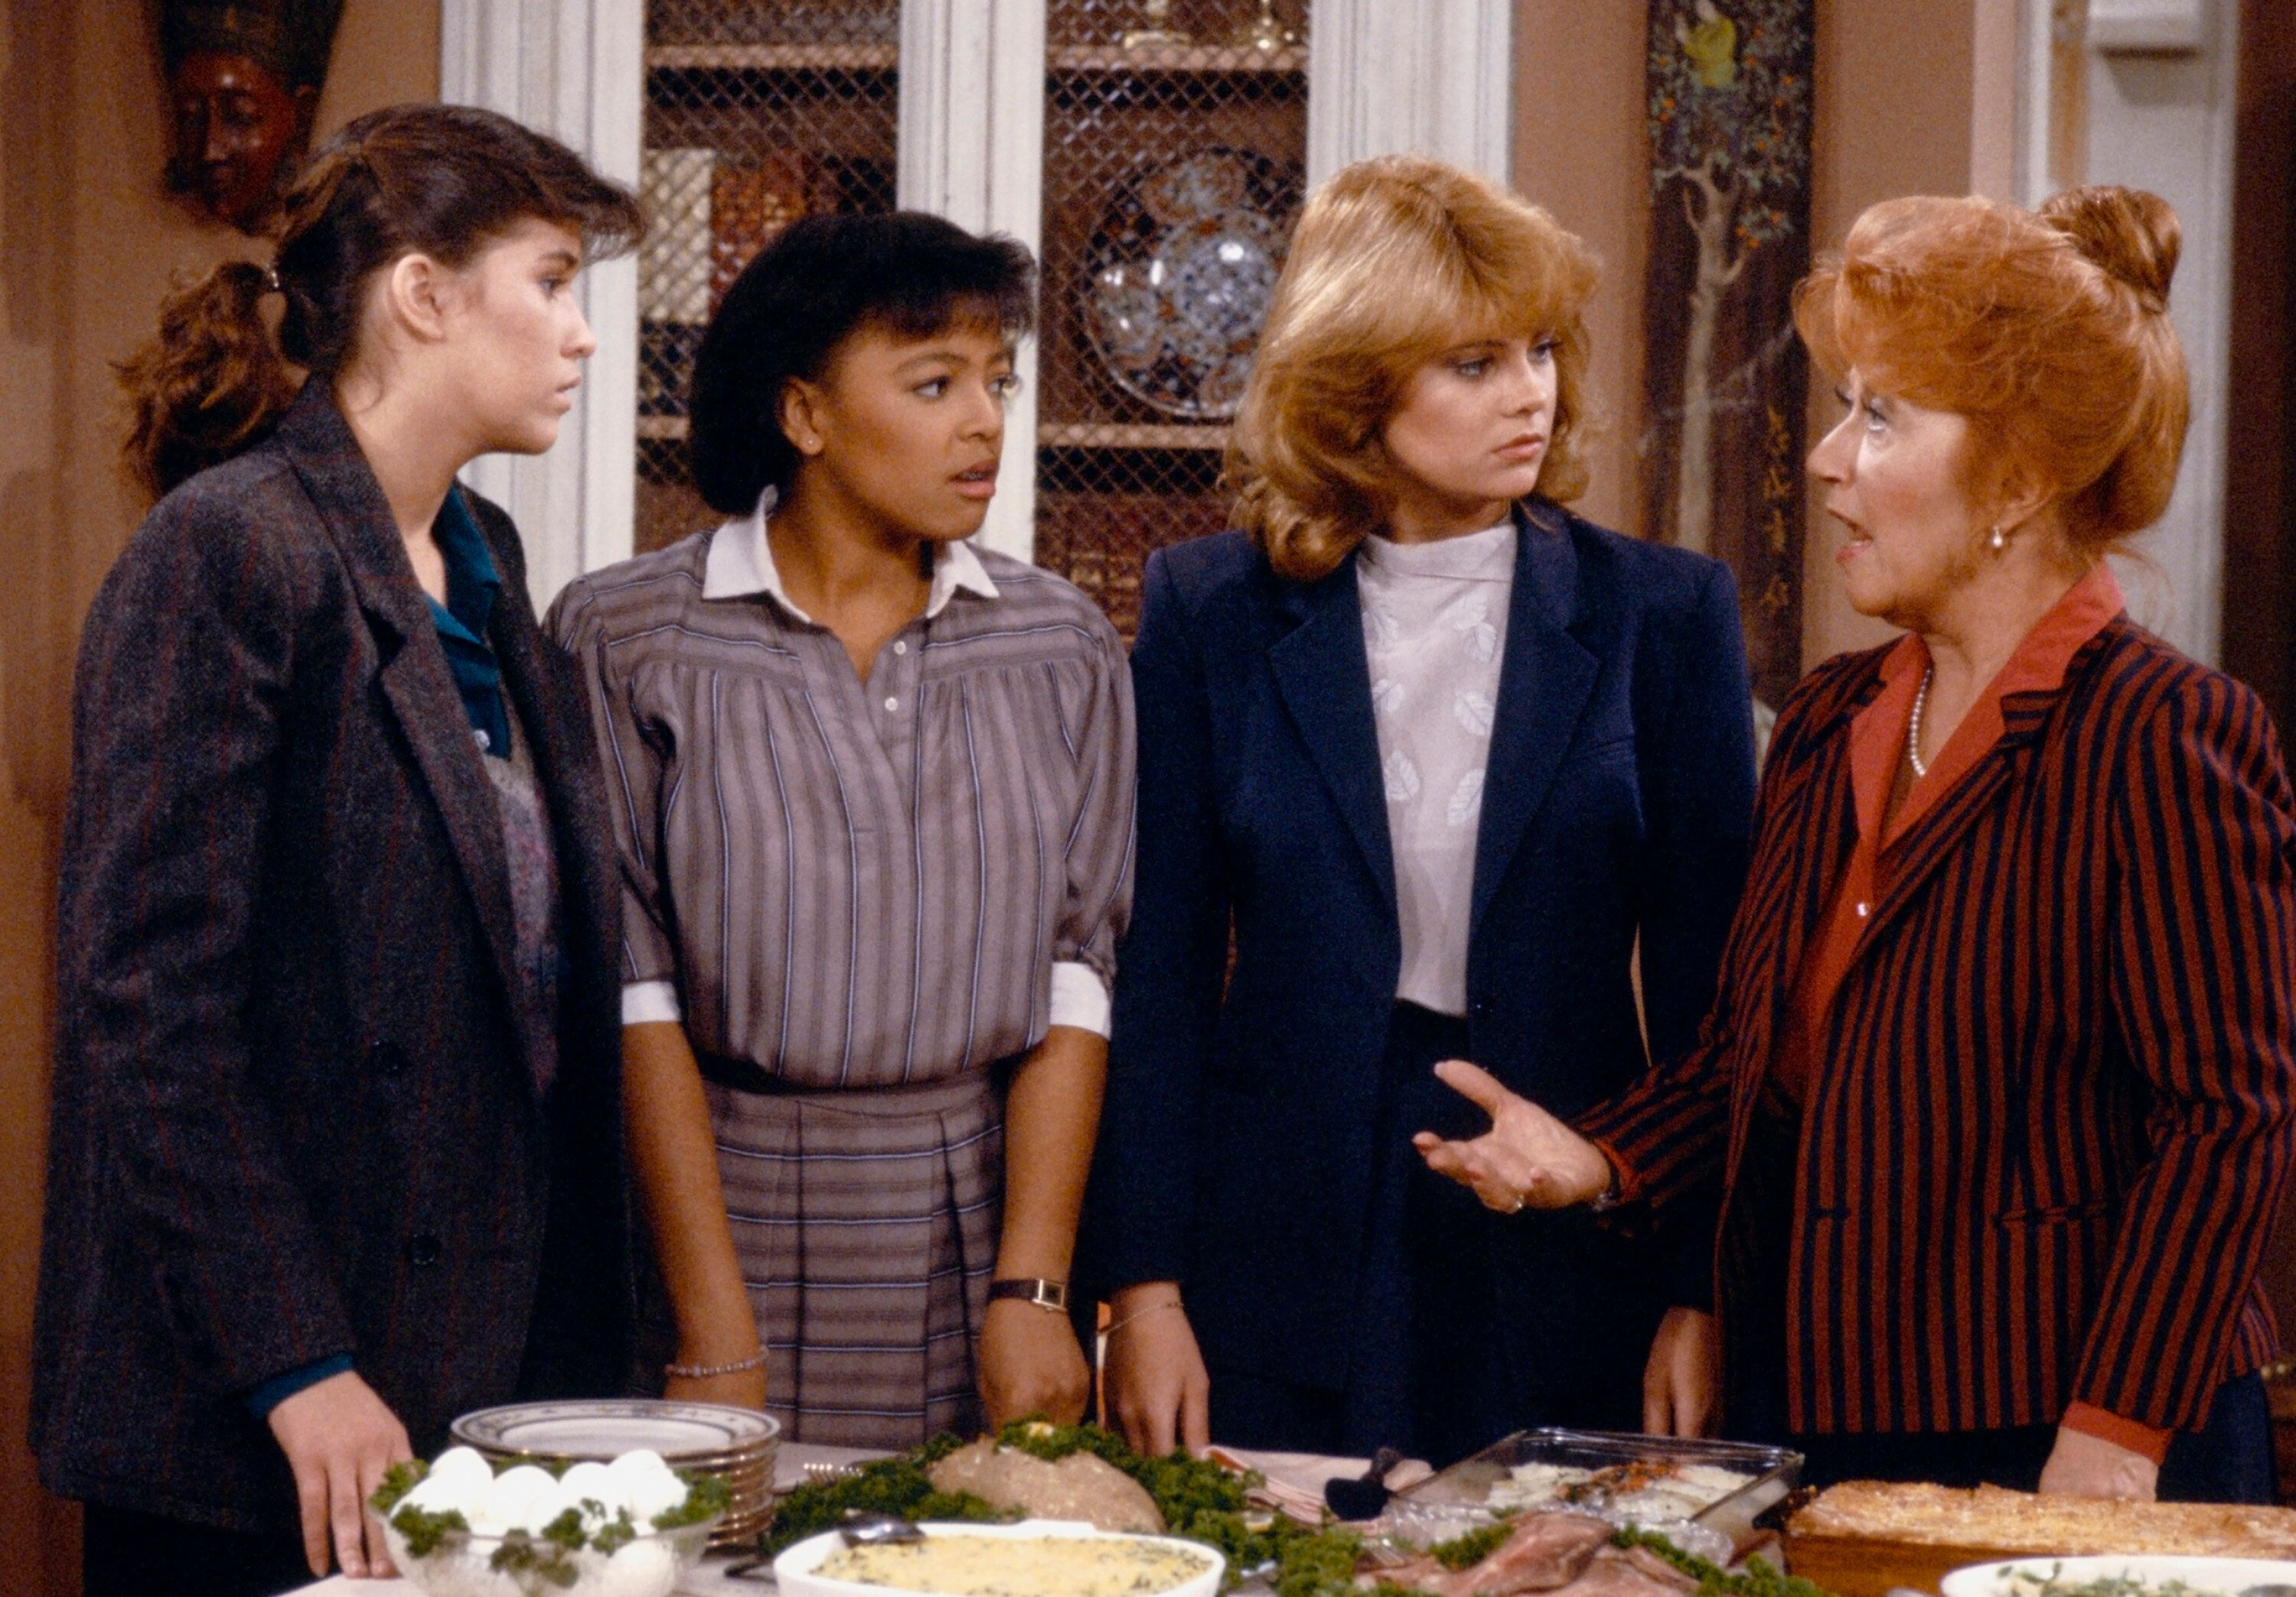 """From left: Nancy McKeon, Kim Fields, Lisa Whelchel and Charlotte Rae in an episode of """"The Facts of Life."""""""